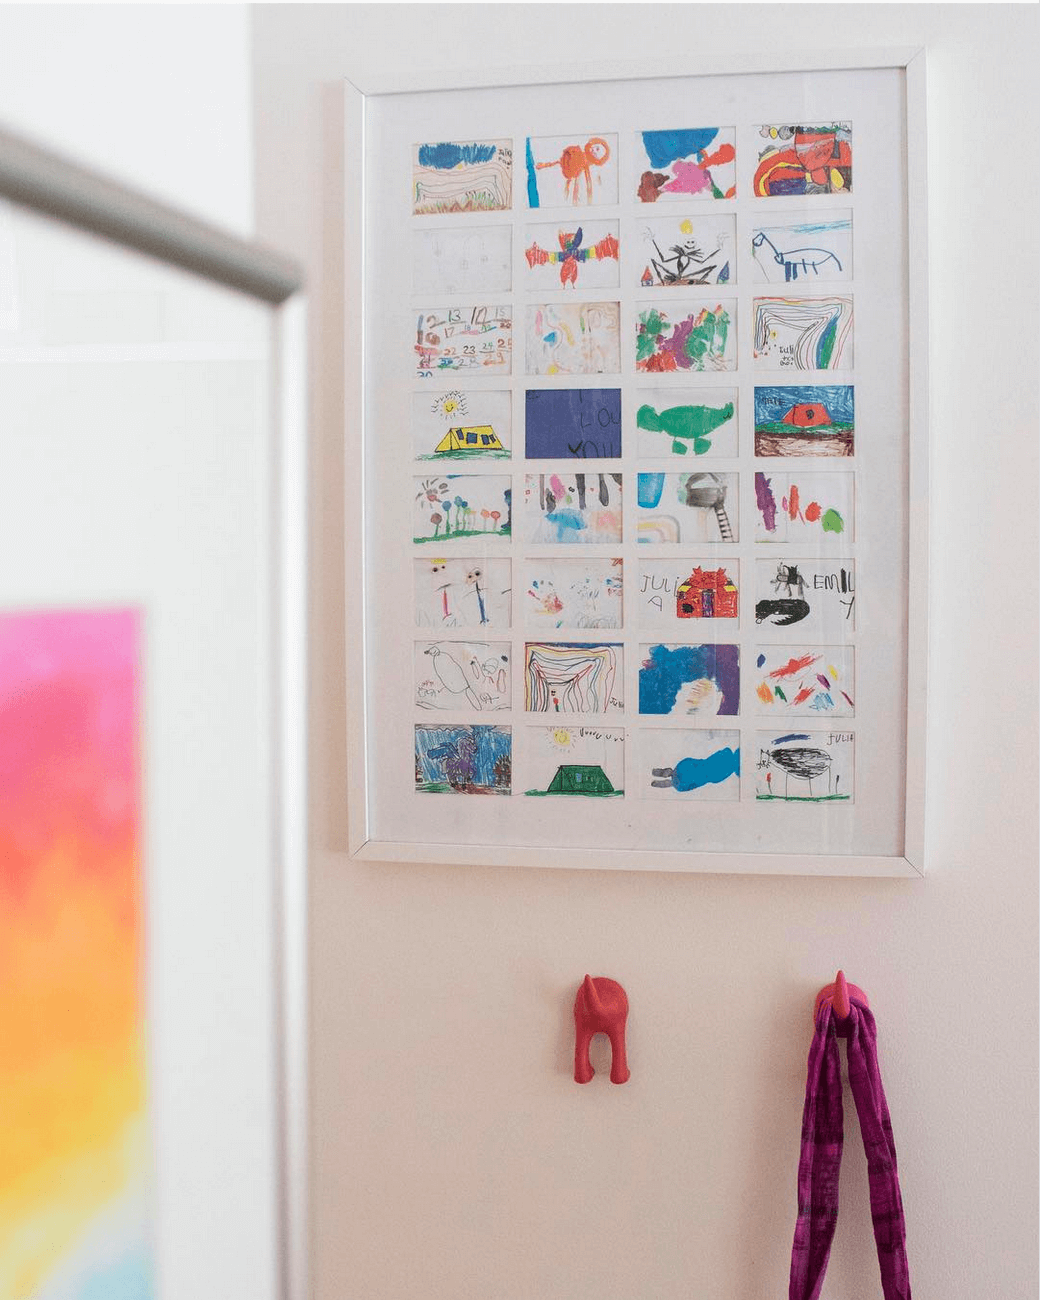 10 unusual and clever ideas to display your children's art